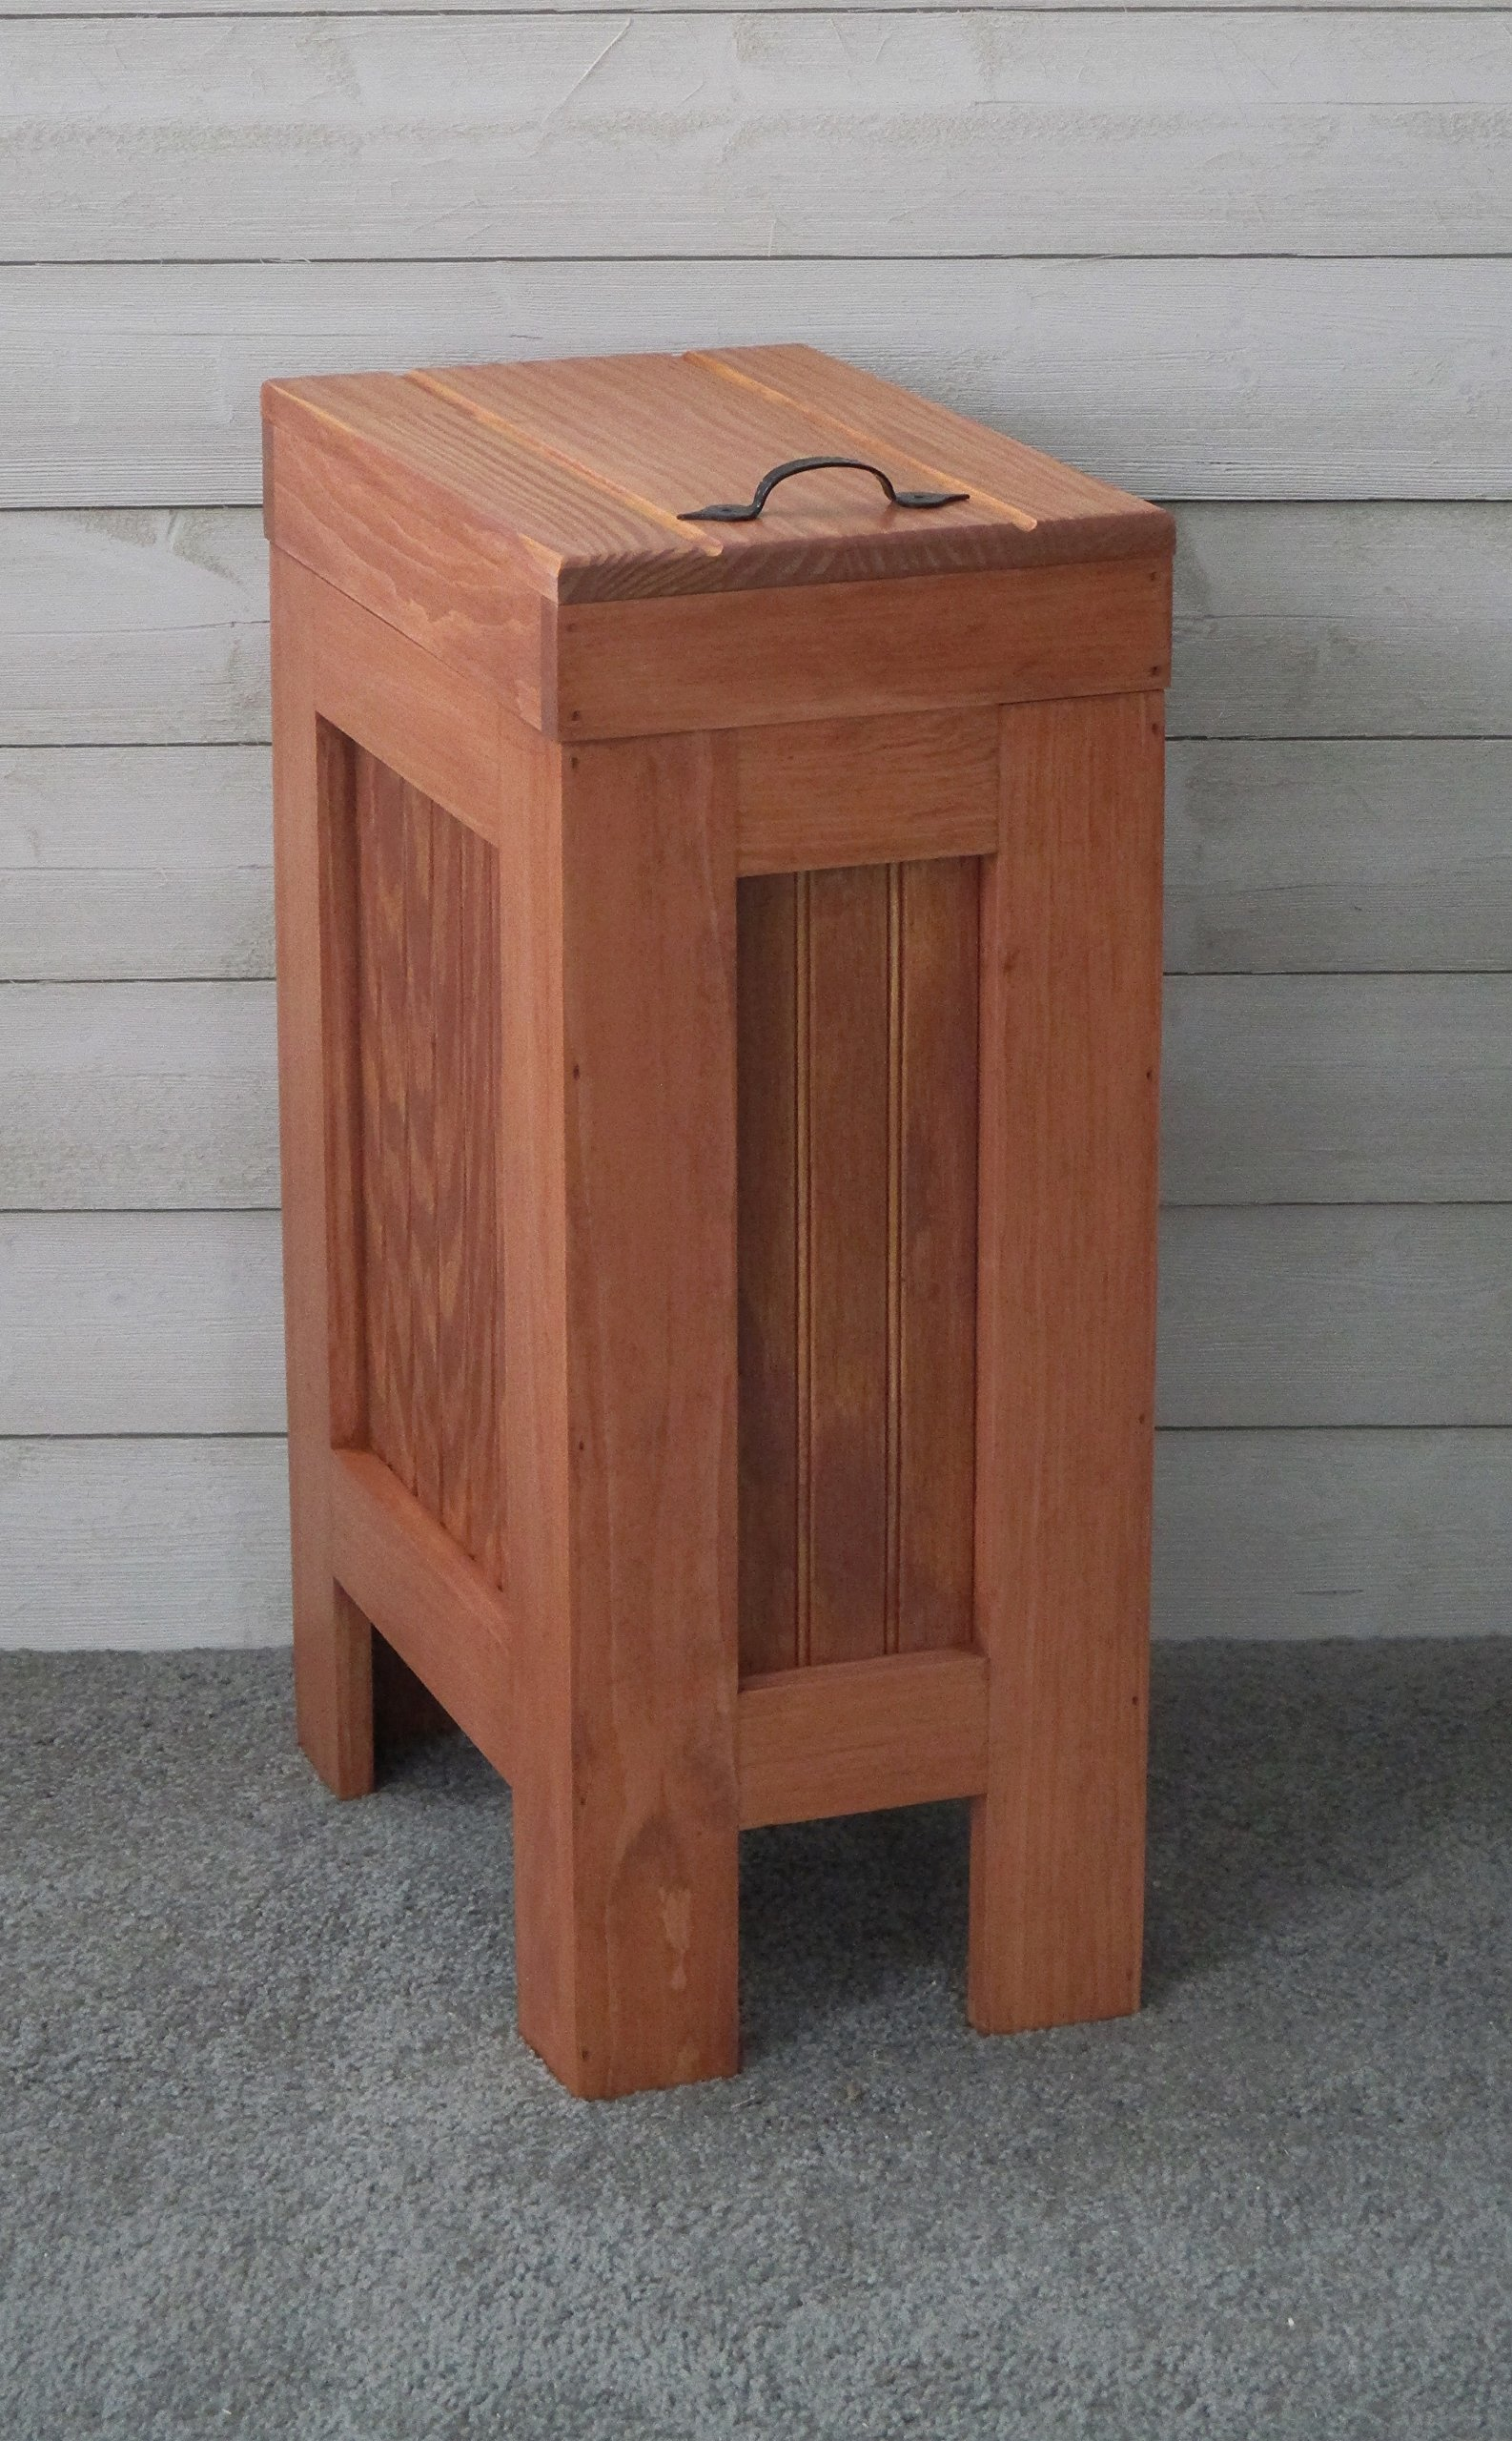 Rustic Wood Trash Bin, Kitchen Trash Can, Wood Trash Can, Dog food storage, 13 Gallon, Recycle Bin, Vermont Maple Stain with Metal Handle - Handmade in USA By BuffaloWoodshop